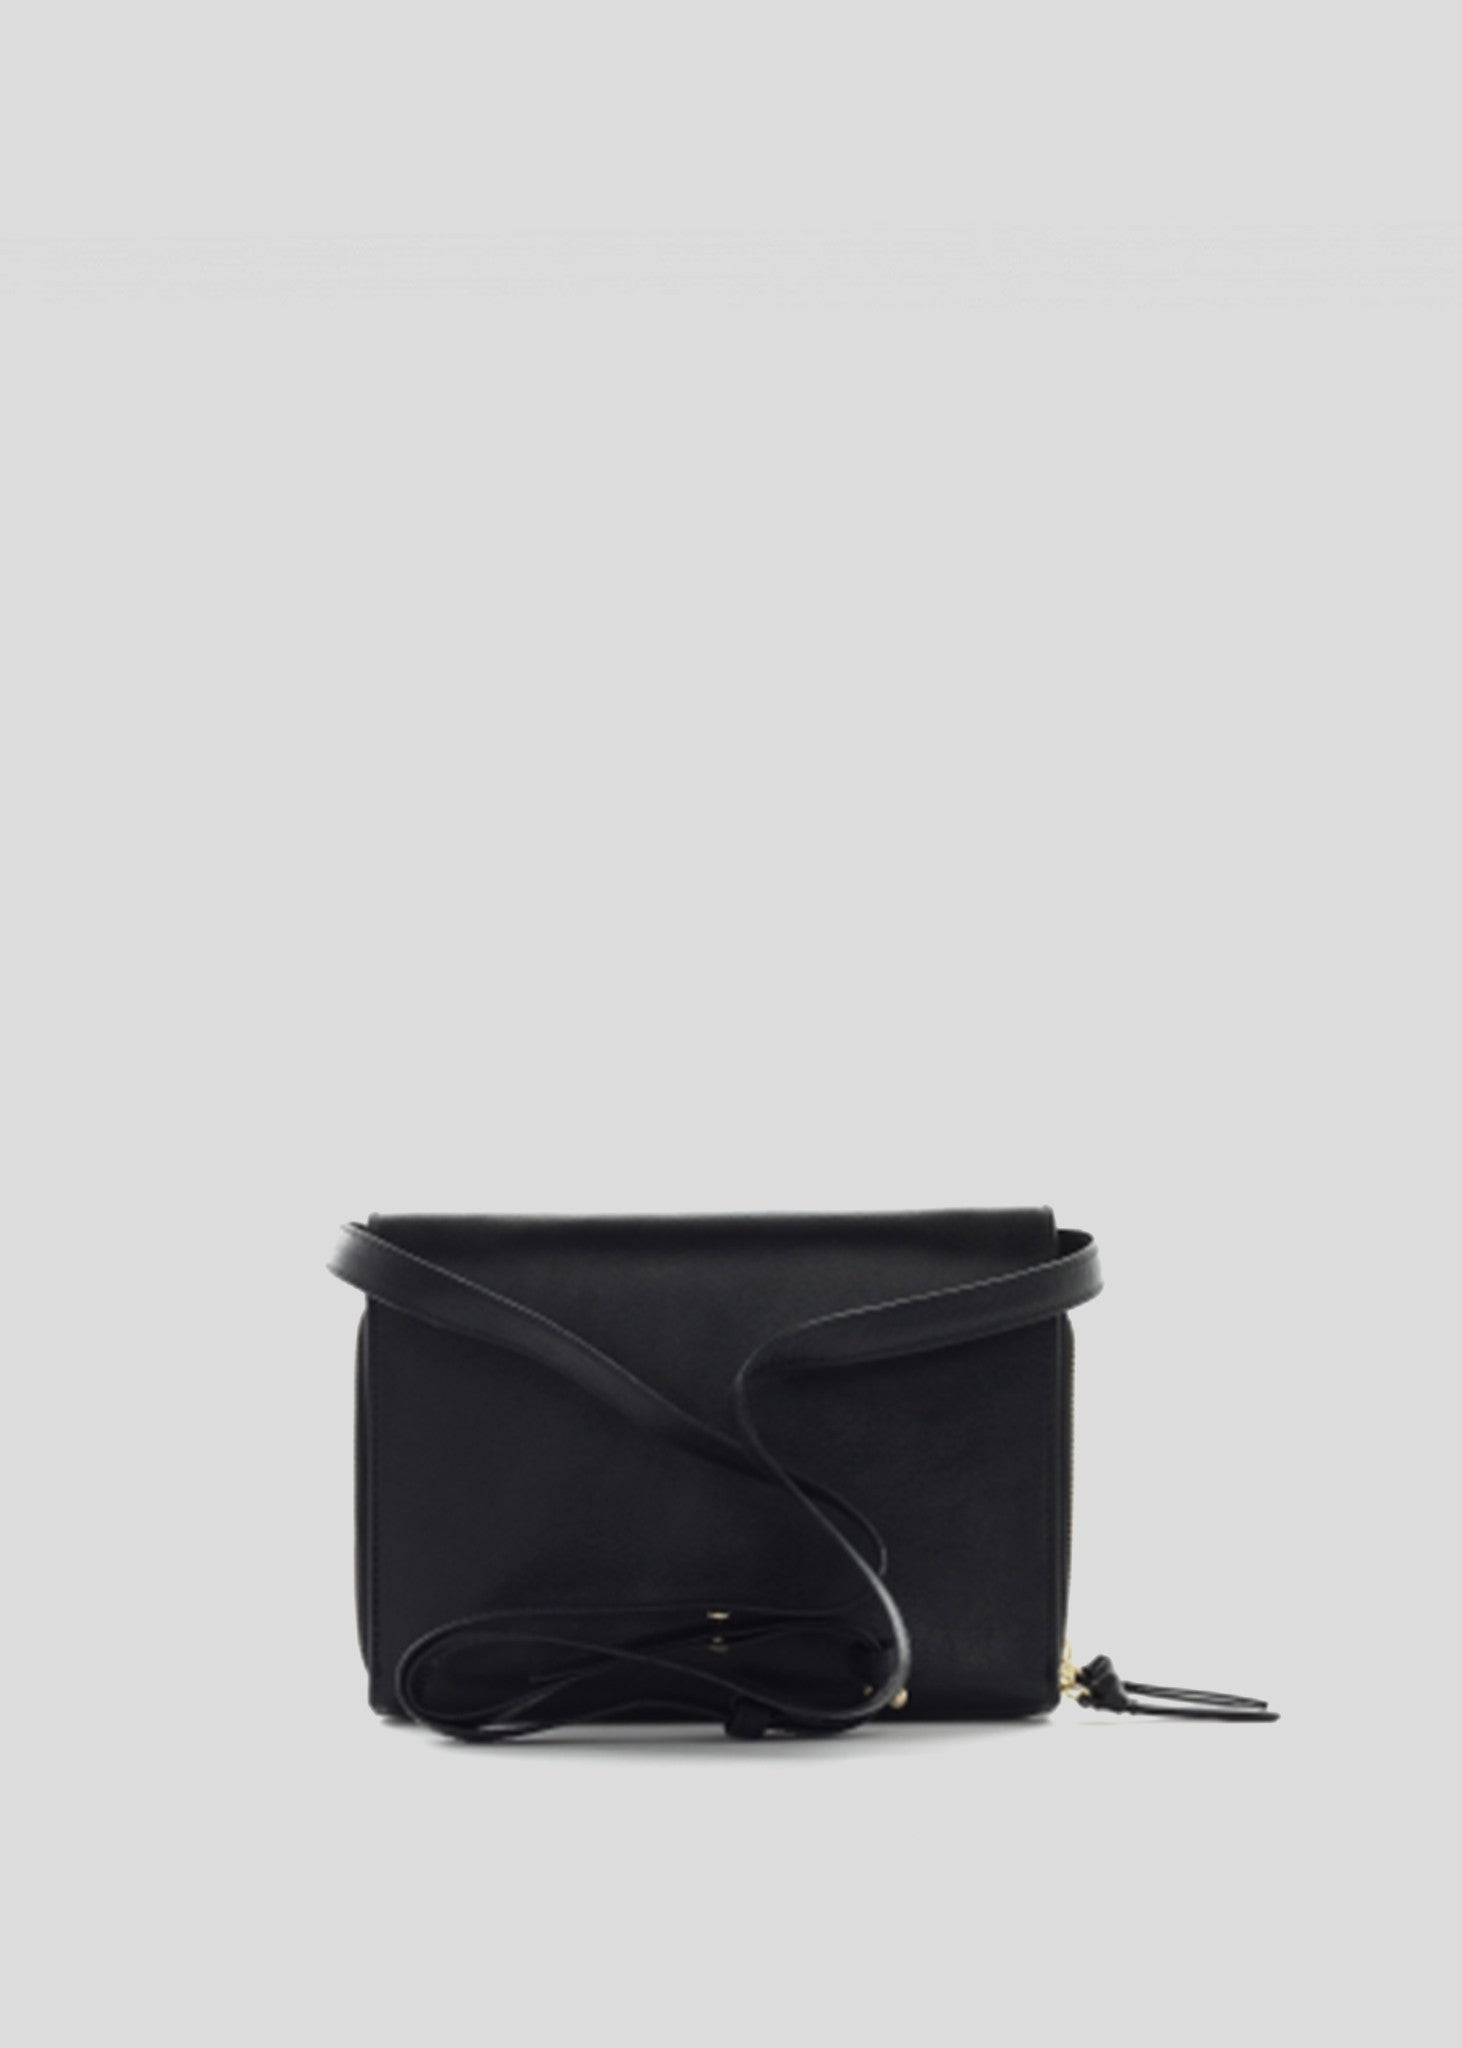 Raf Eve Bag Black